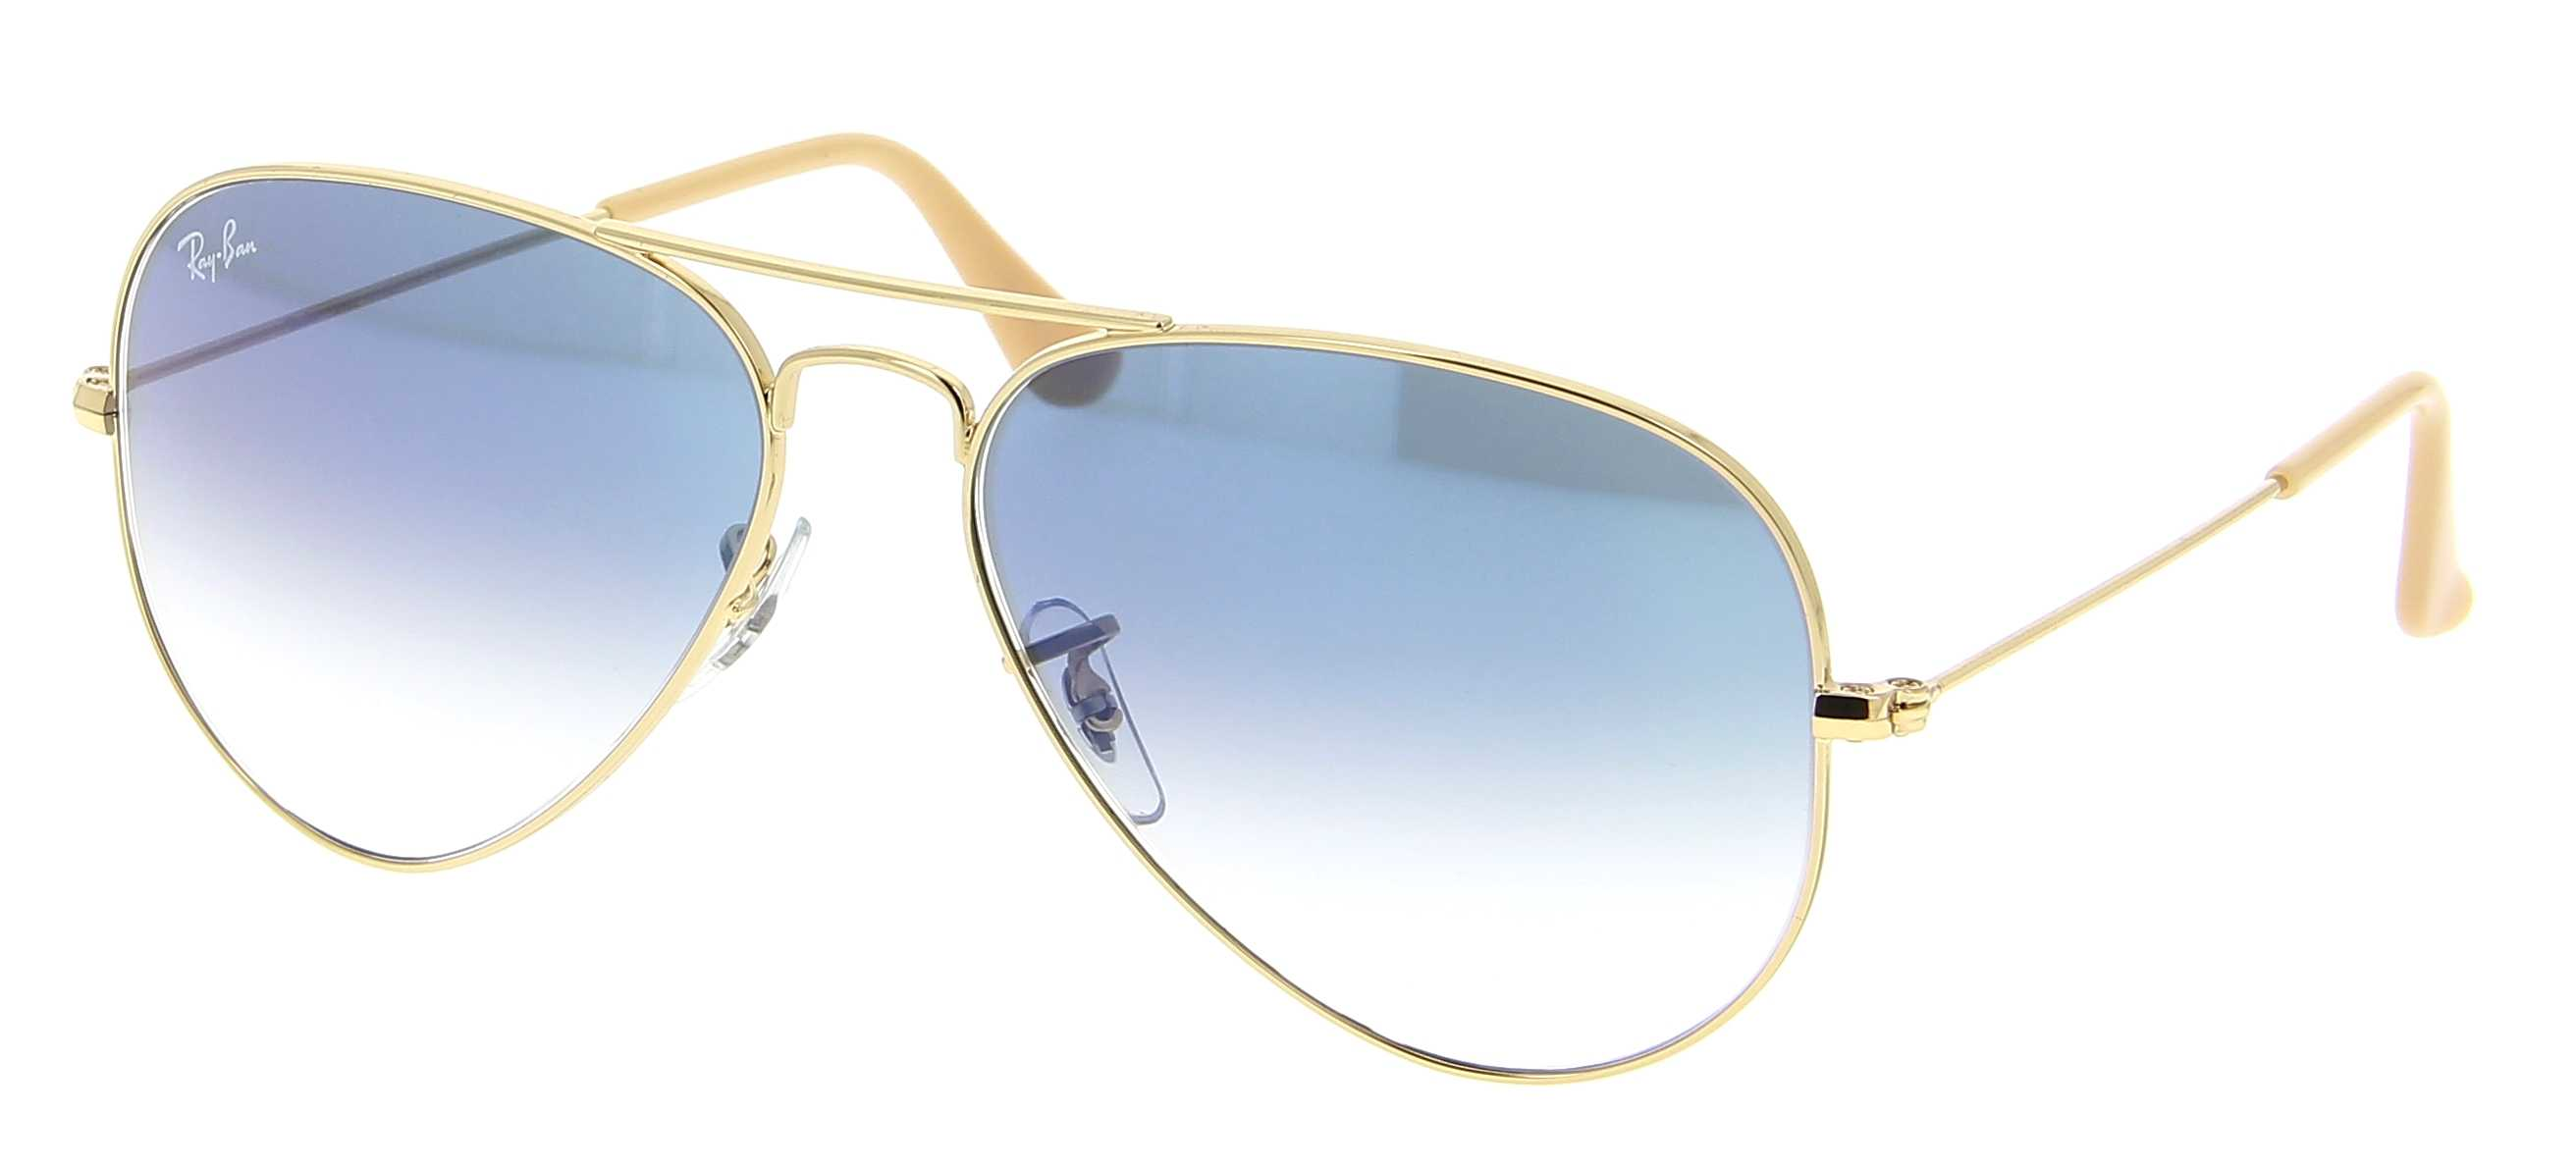 723f70abb4 Details about NEW Ray-Ban 3025-001 3F-58 Gold Sunglasses